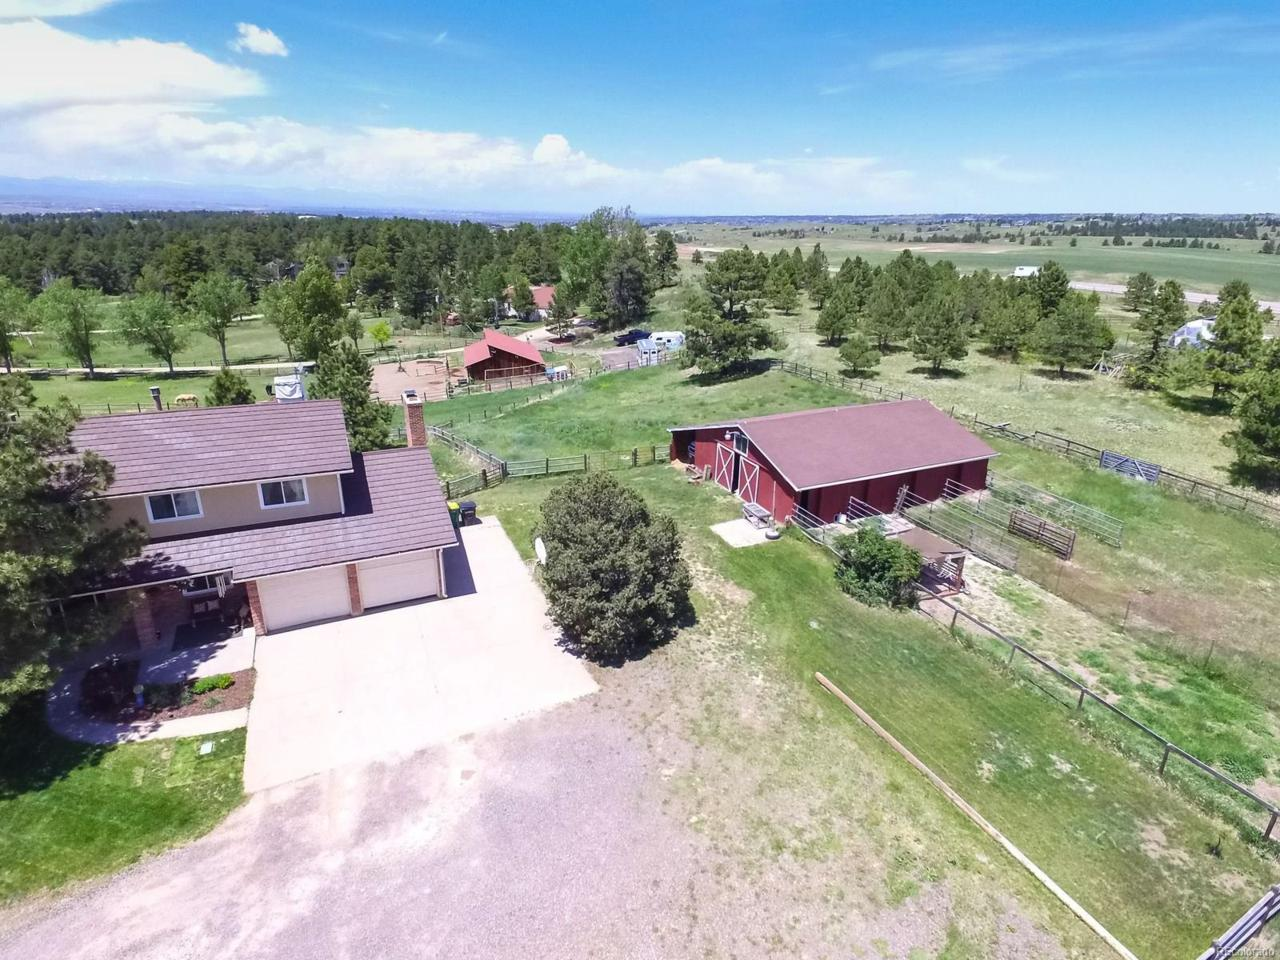 6814 N Trailway Circle, Parker, CO 80134 (MLS #7858742) :: 8z Real Estate